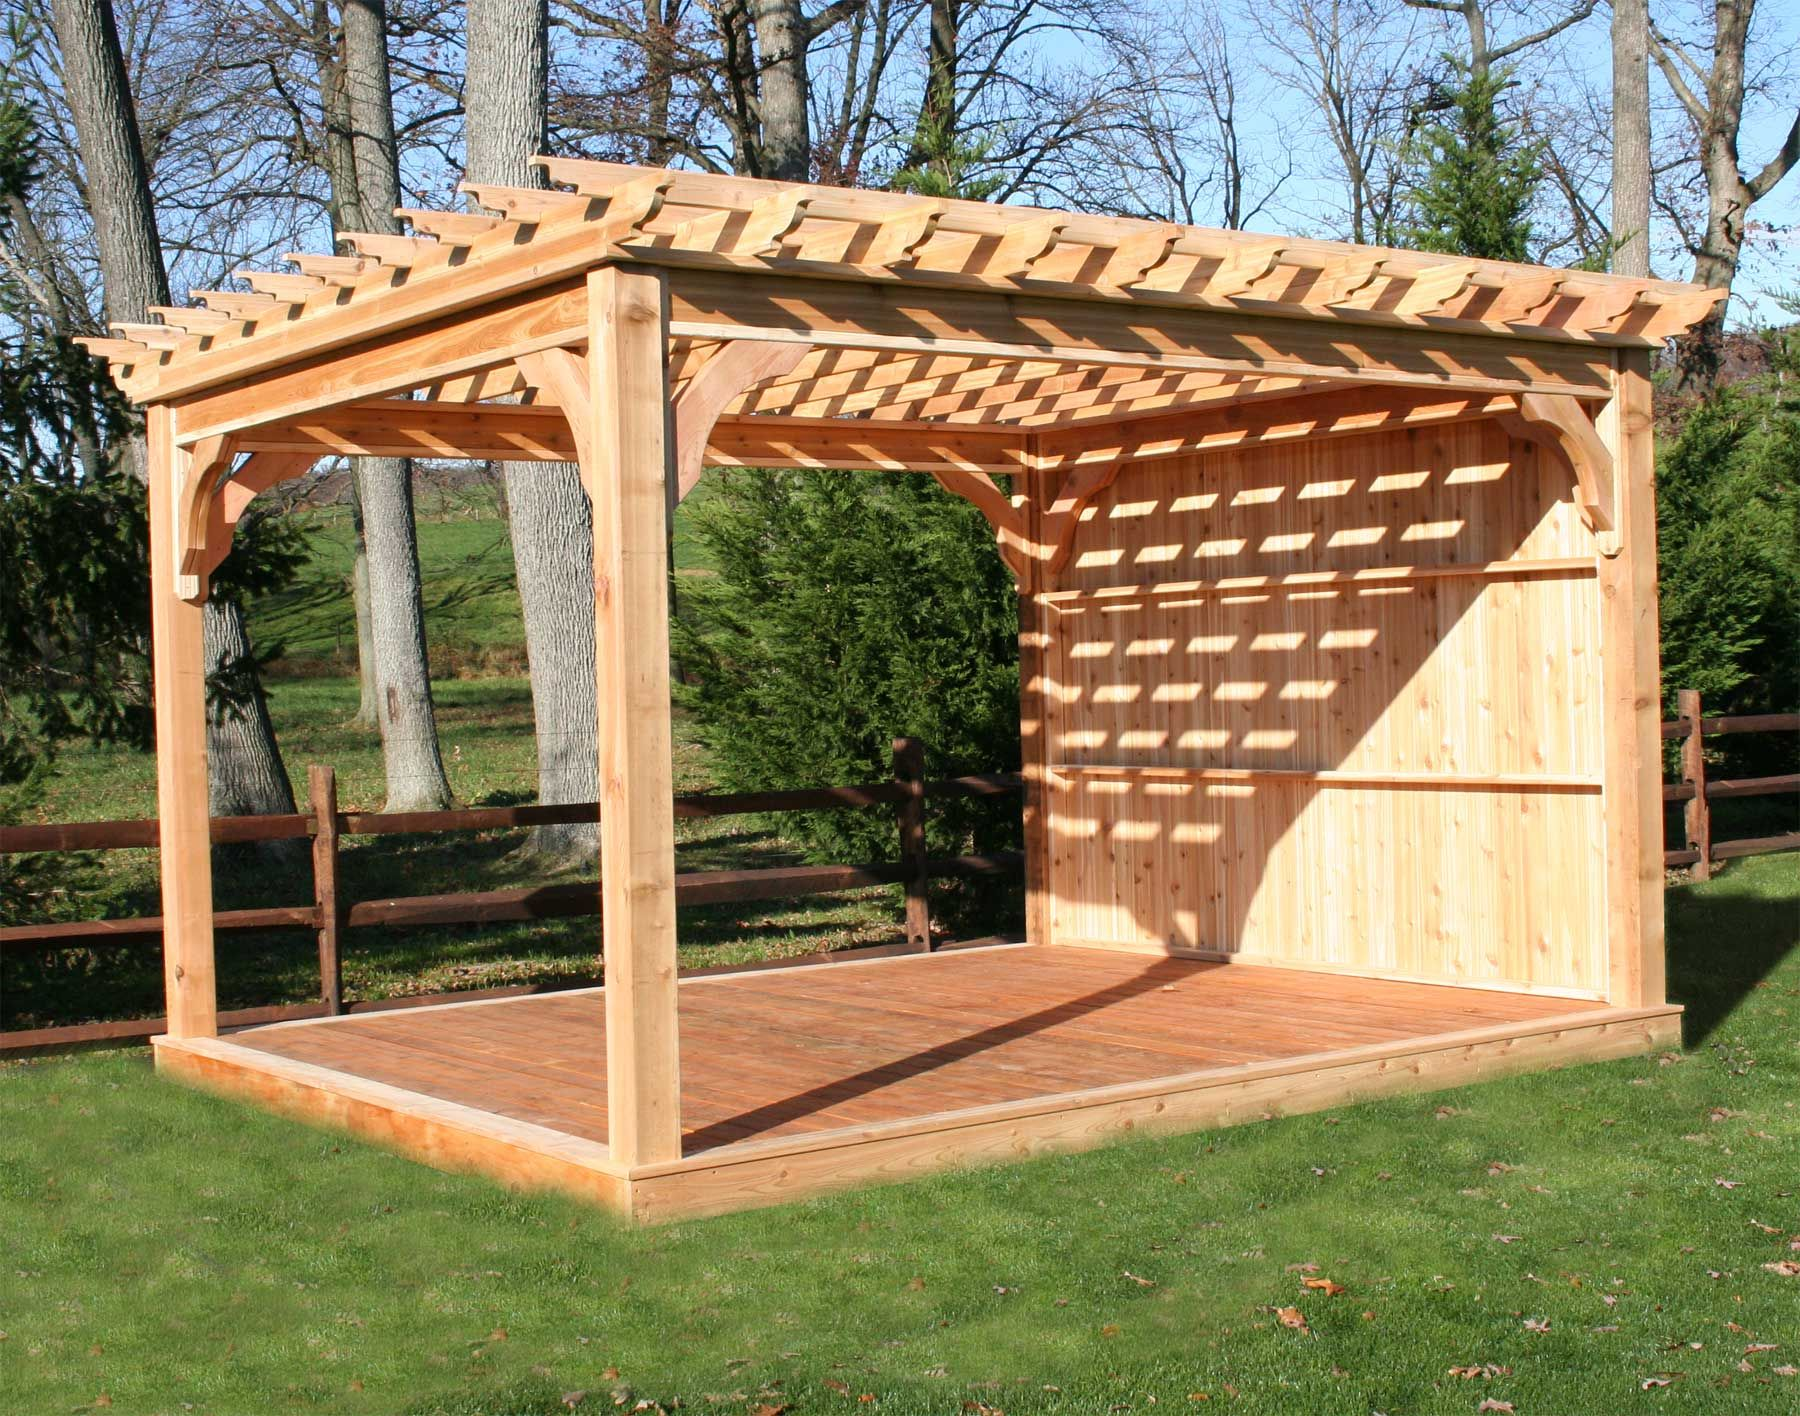 Red cedar free standing 4 beam pergolas 6x6 posts 2x6 for Patio plans free